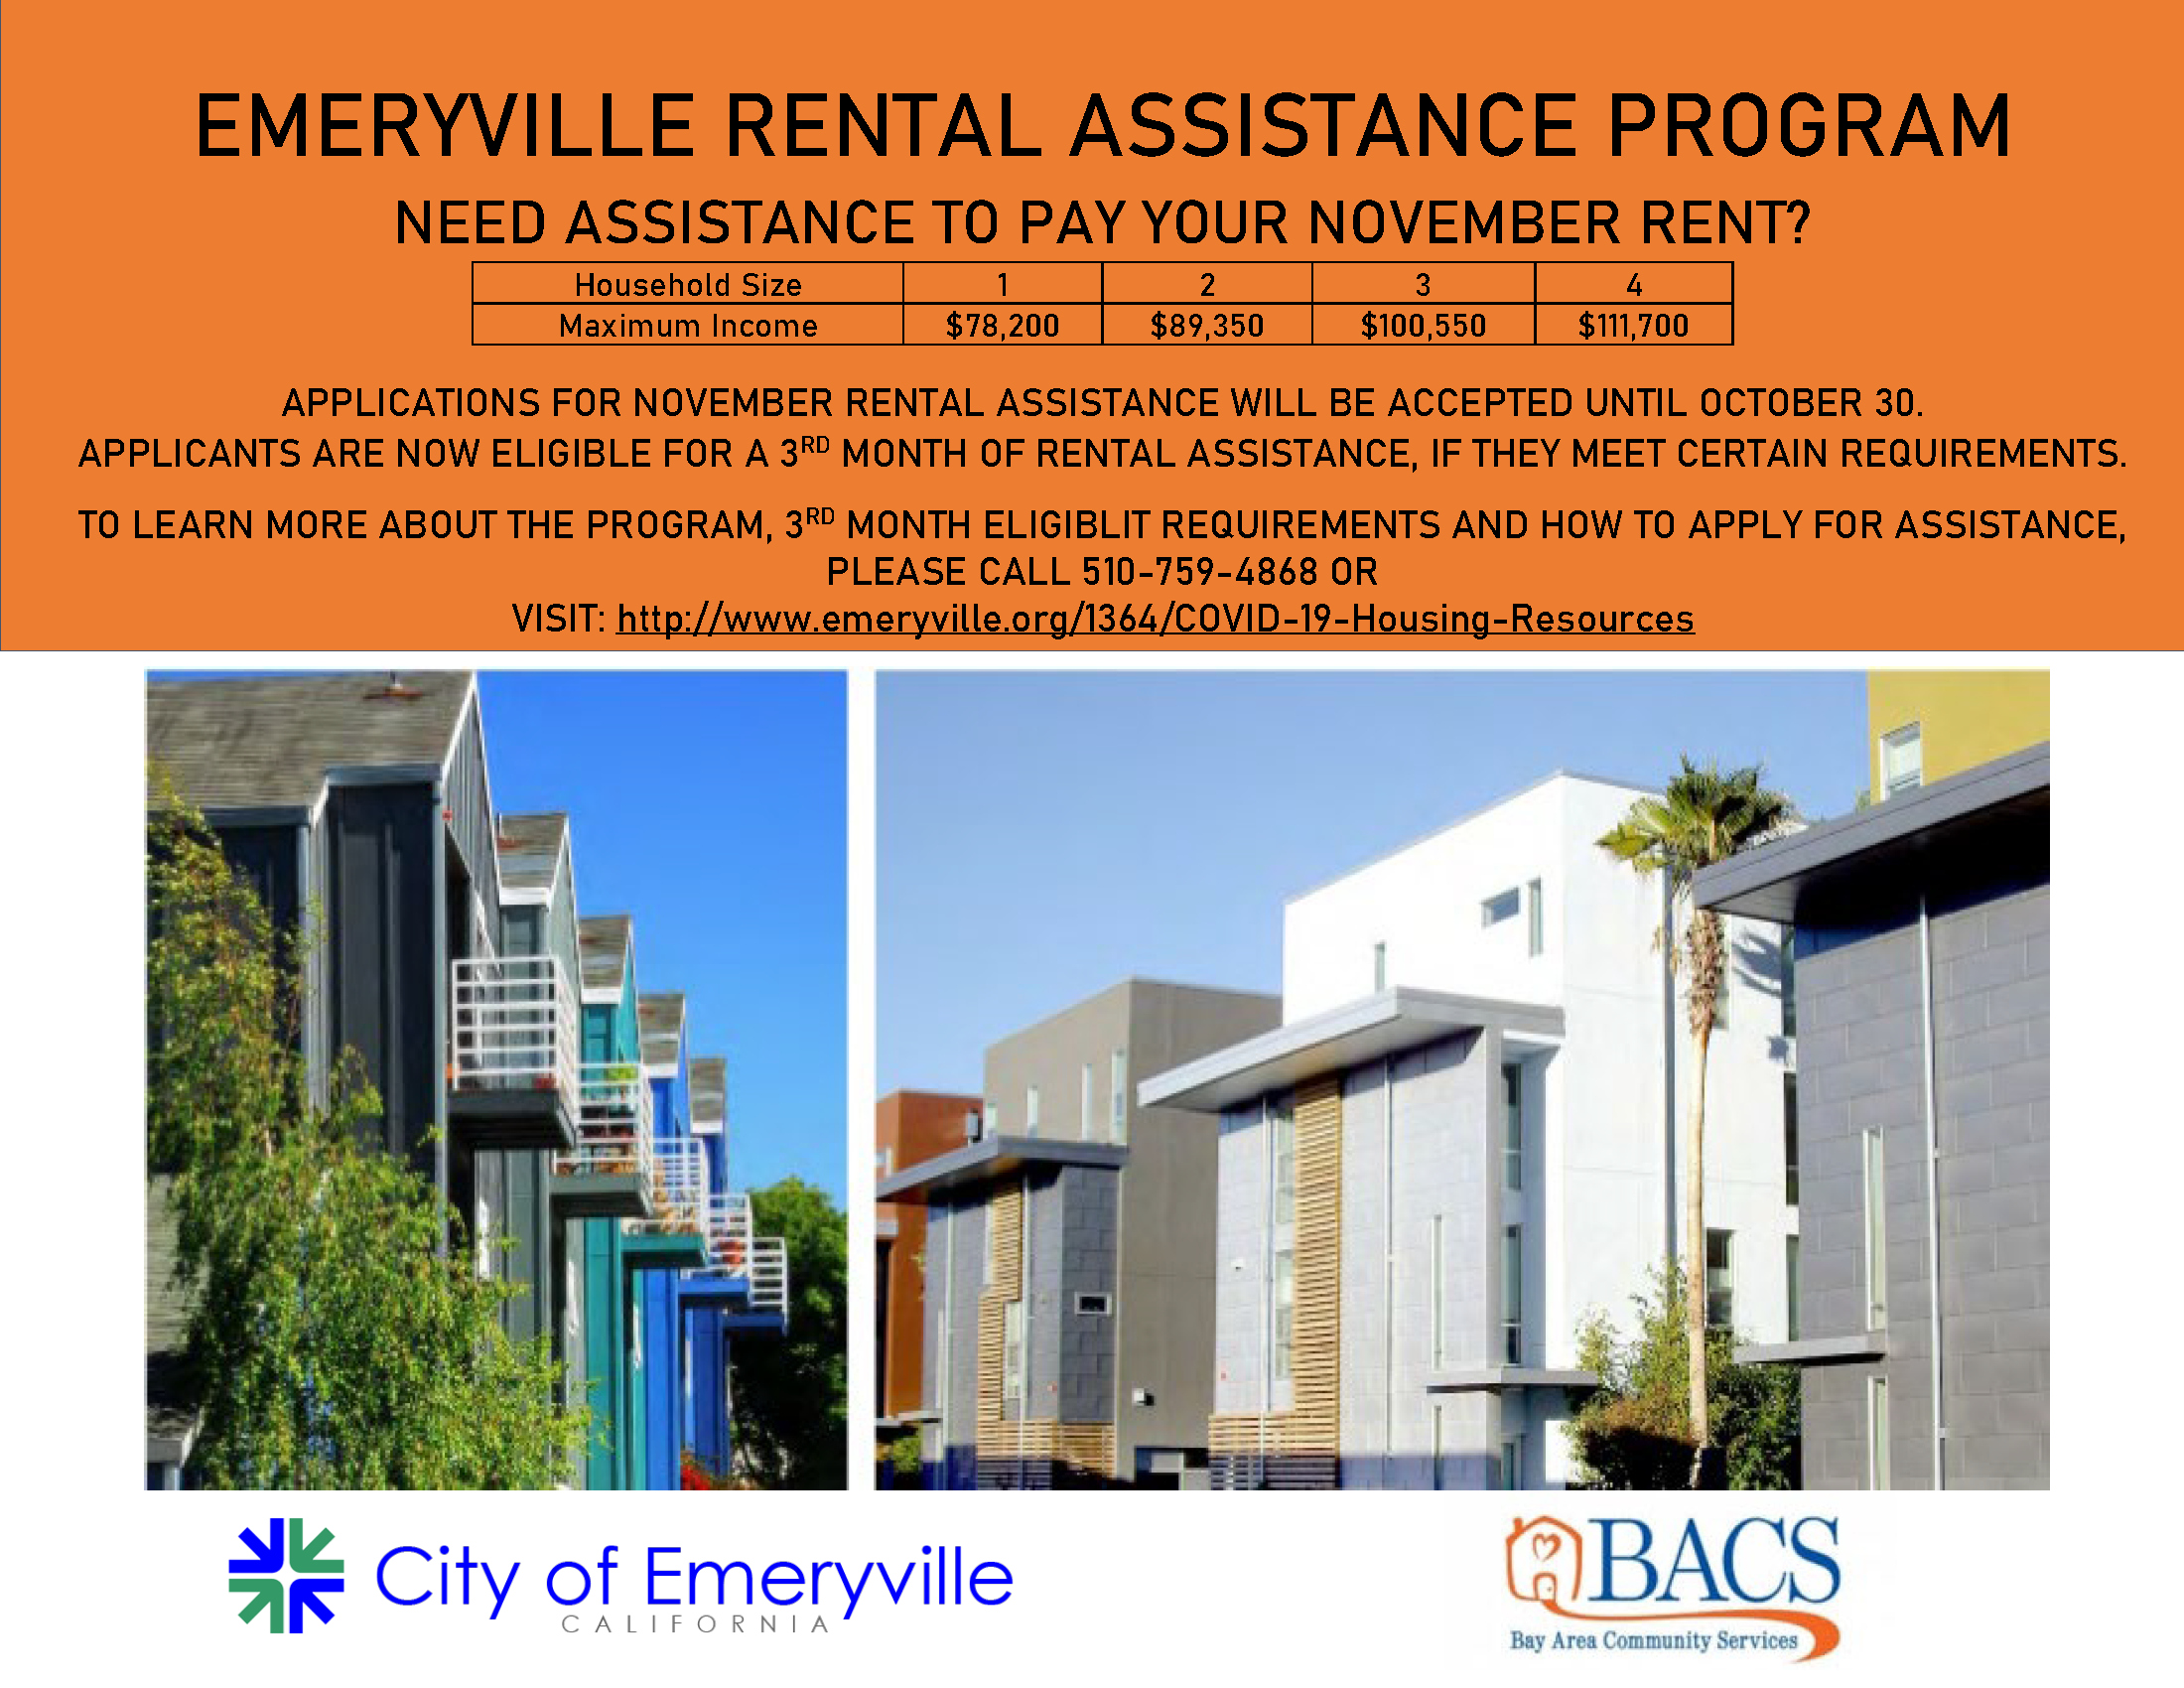 Emeryville Rental Assistance Program